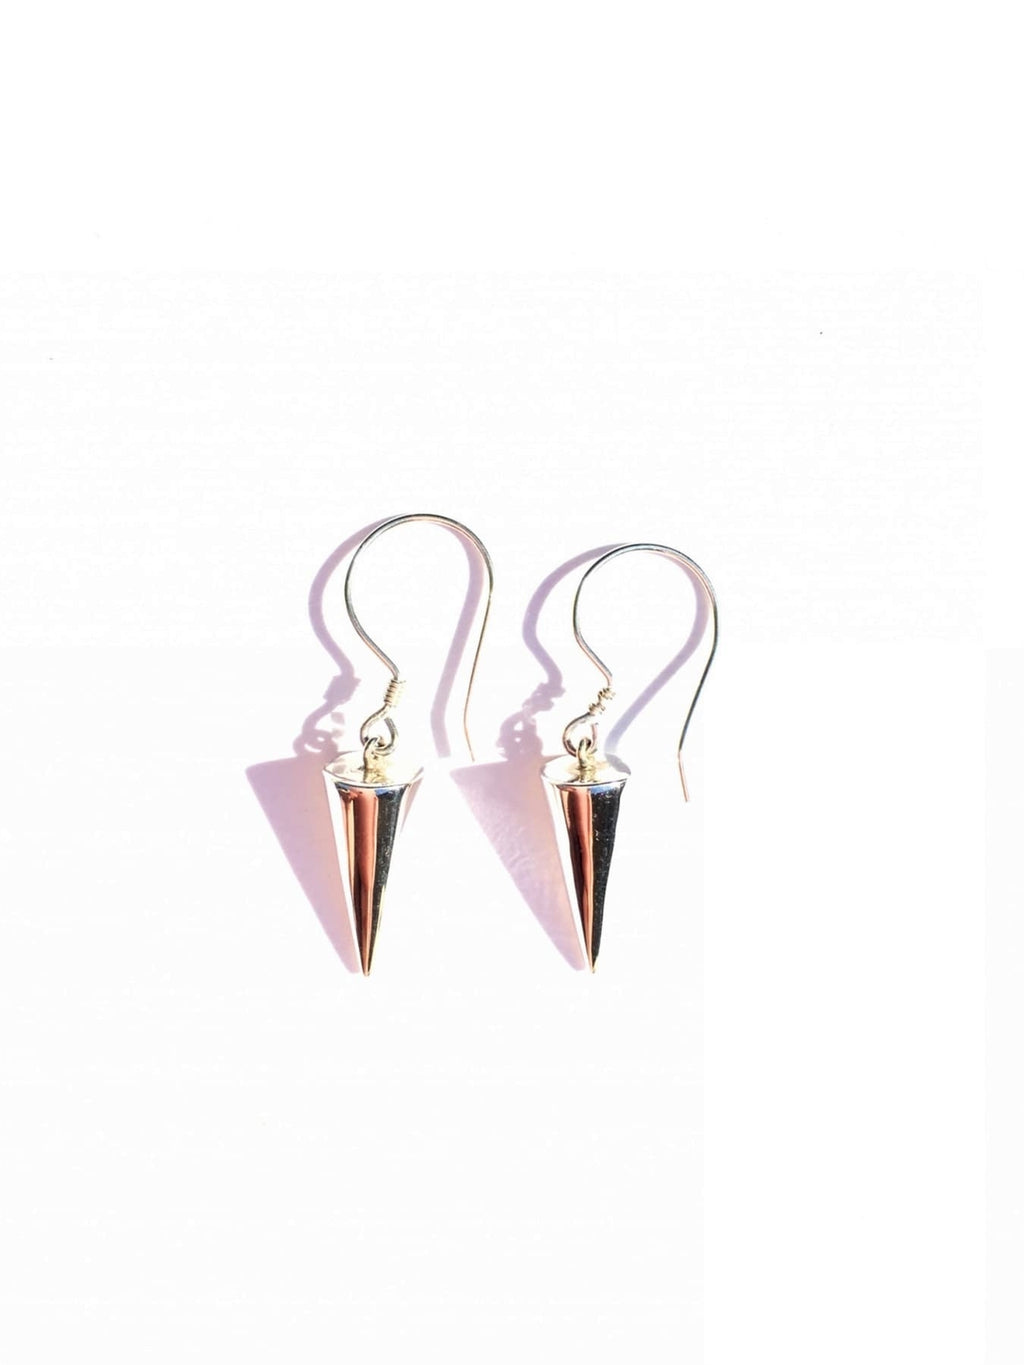 Kathy Kamei Sterling Silver Conical Shaped Earrings